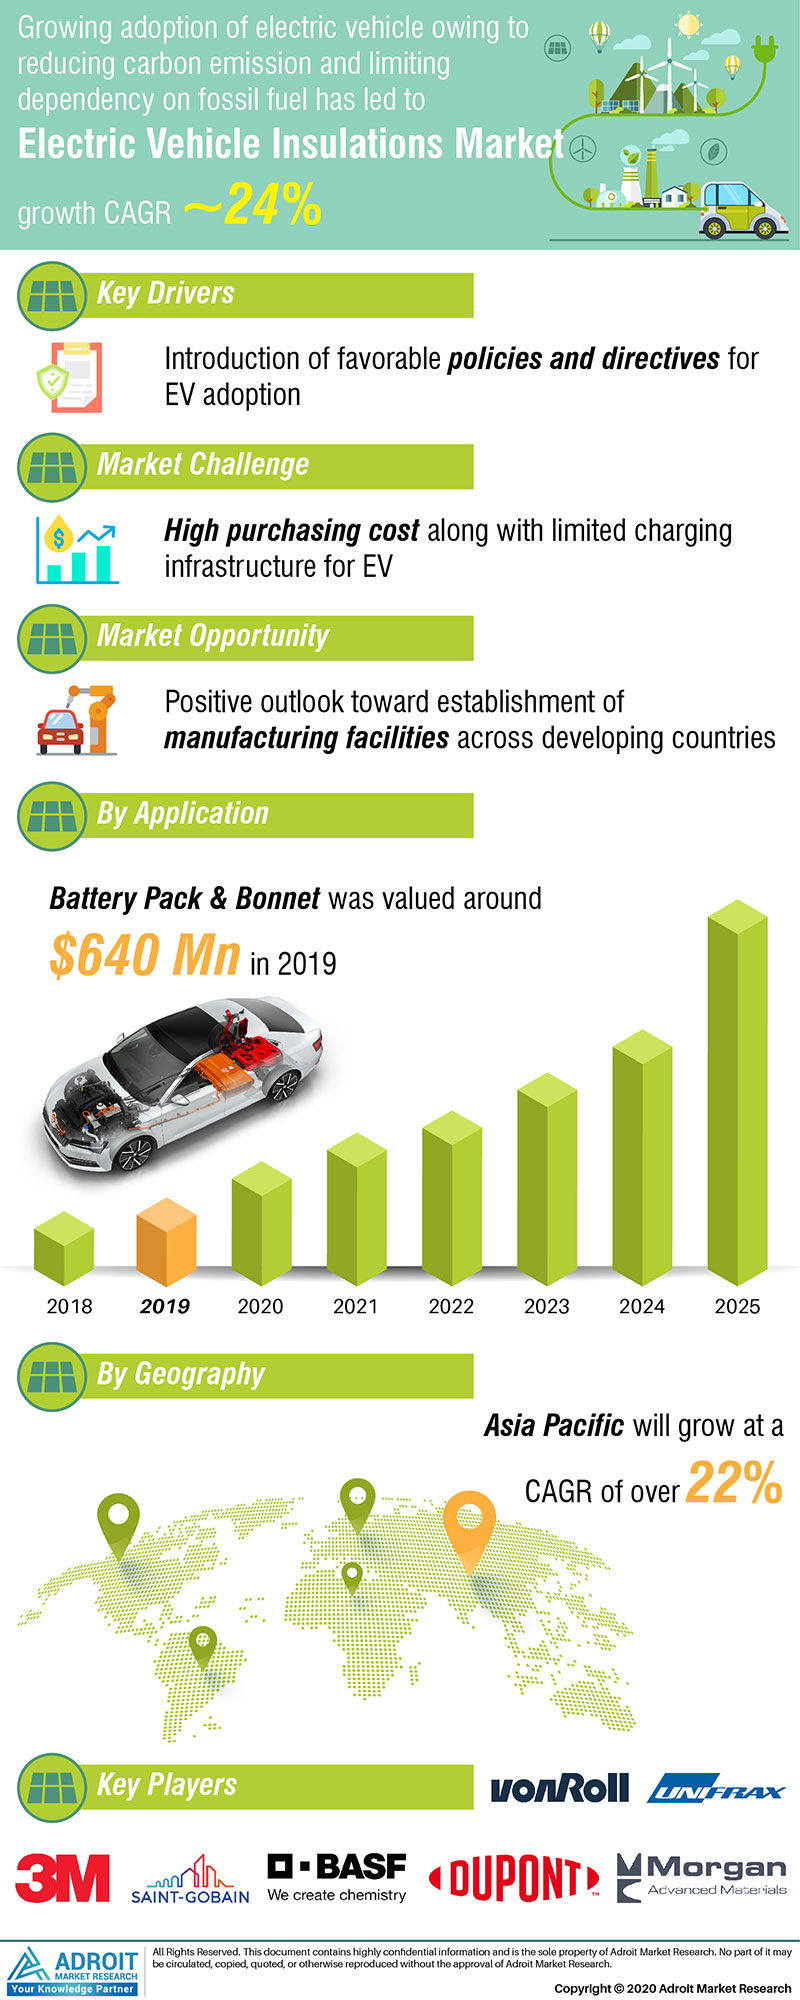 Electric Vehicle Insulation Market by Material, Application, and Region, Global Forecasts 2018 to 2025